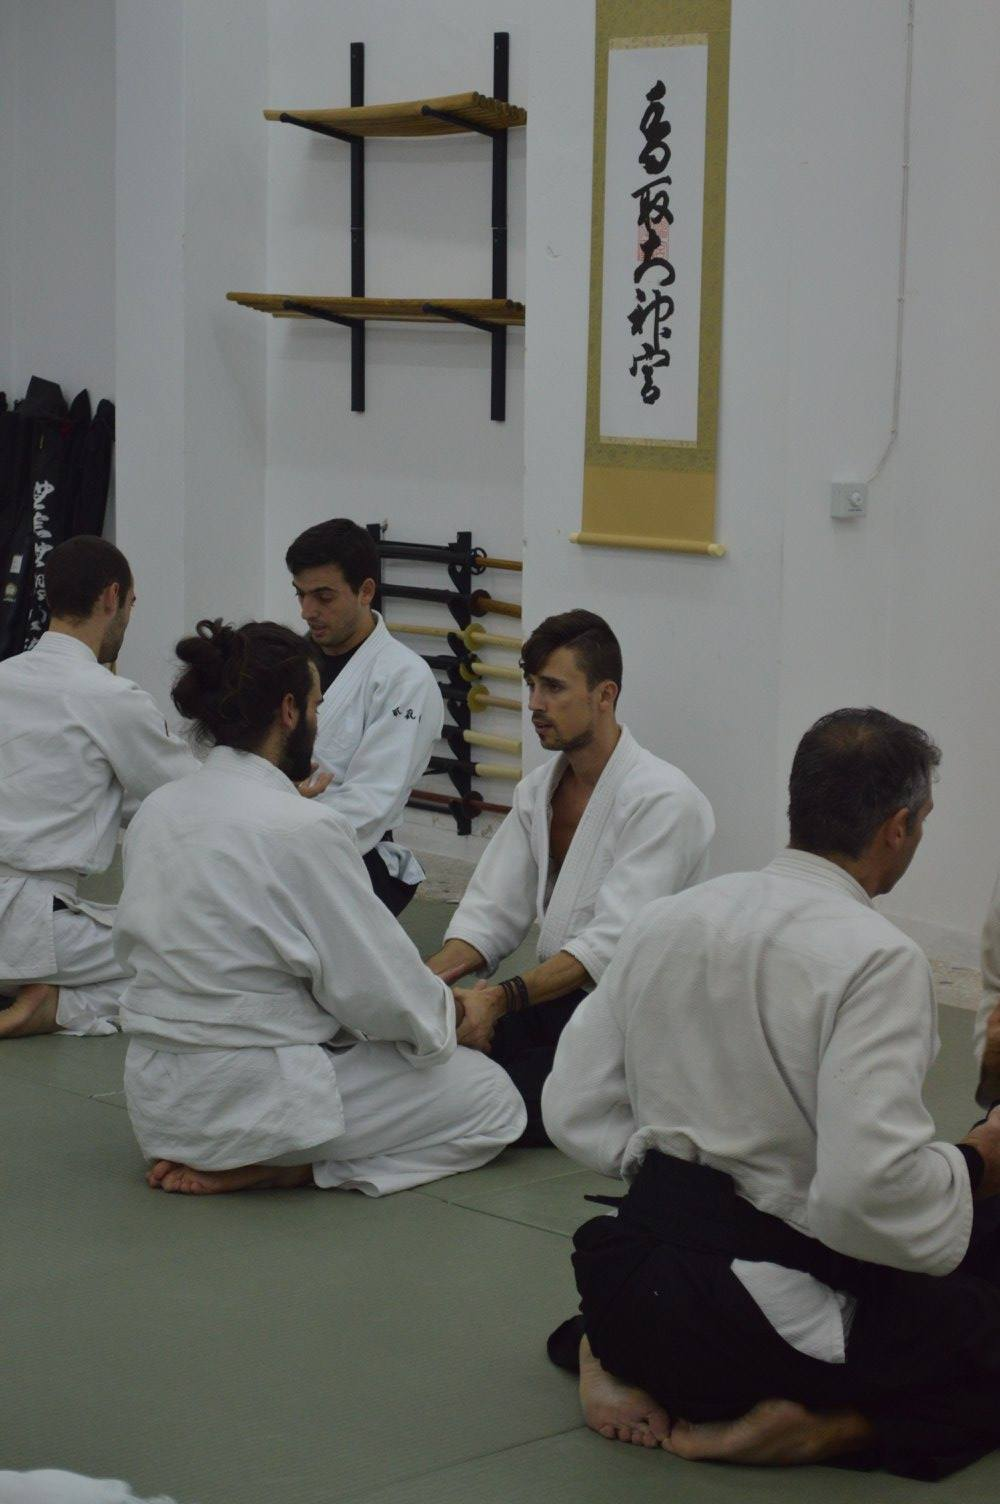 abc common aikido practice109